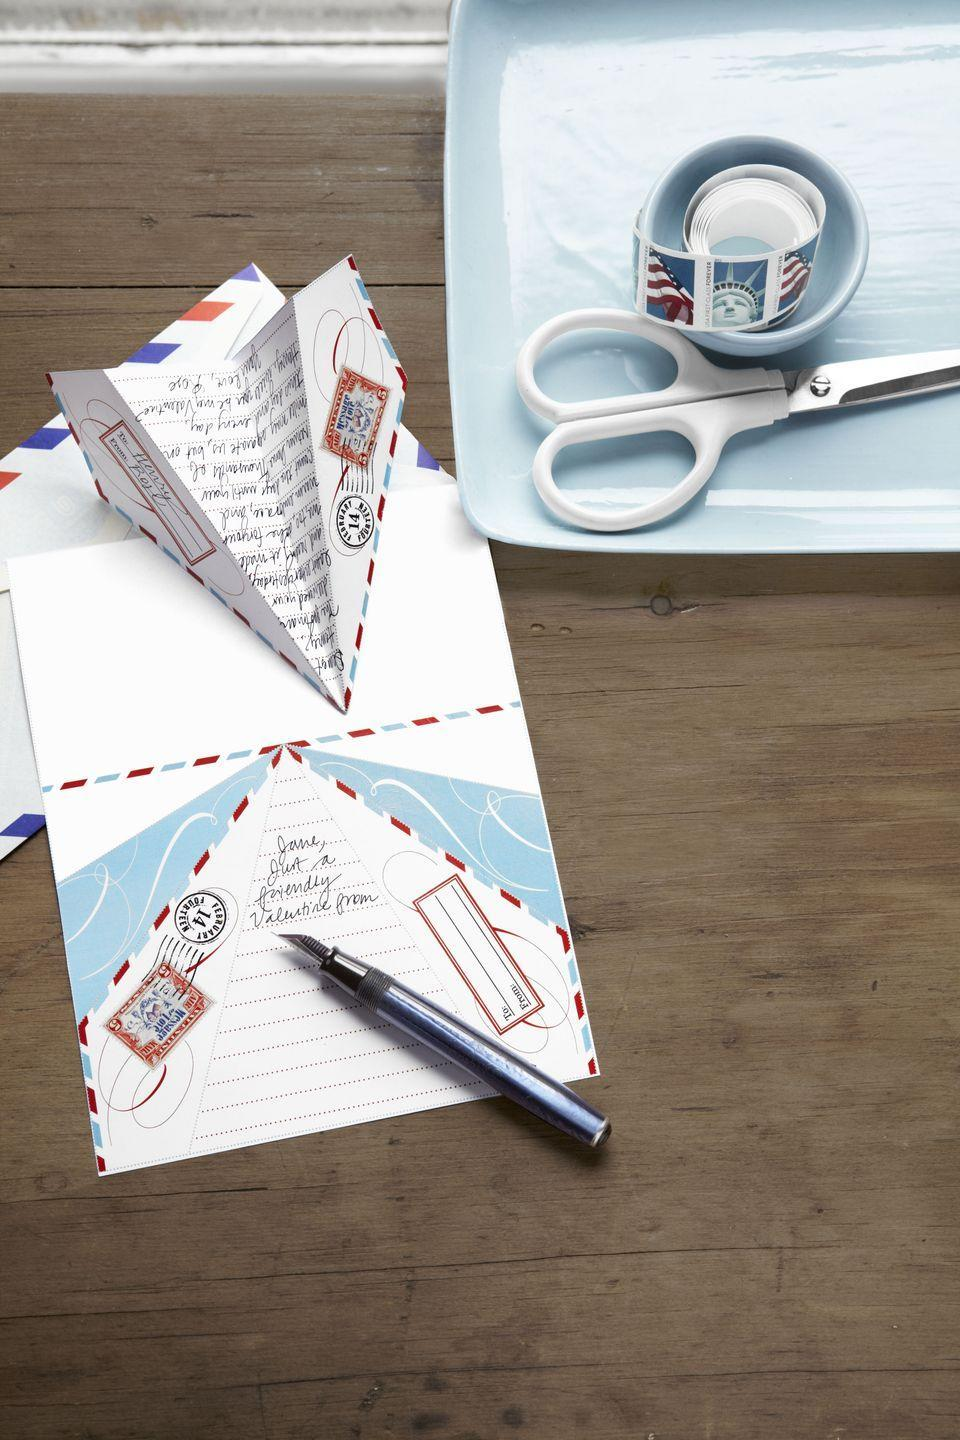 "<p>Give your Valentine's Day notes a lift. Take an aerial approach to letter writing with pint-size paper airplanes. <em>CL</em> contributing editor Cathe Holden designed this high-flying stationery. All you have to do? <a href=""http://clv.h-cdn.co/assets/cm/15/27/559438cf73701_-_airplane_valentine.pdf"" rel=""nofollow noopener"" target=""_blank"" data-ylk=""slk:Print out a copy of the 8&quot;W x 11&quot;L PDF"" class=""link rapid-noclick-resp"">Print out a copy of the 8""W x 11""L PDF</a>, jot down a note, then cut off the attached folding instructions and follow them to send your sentiments soaring.</p>"